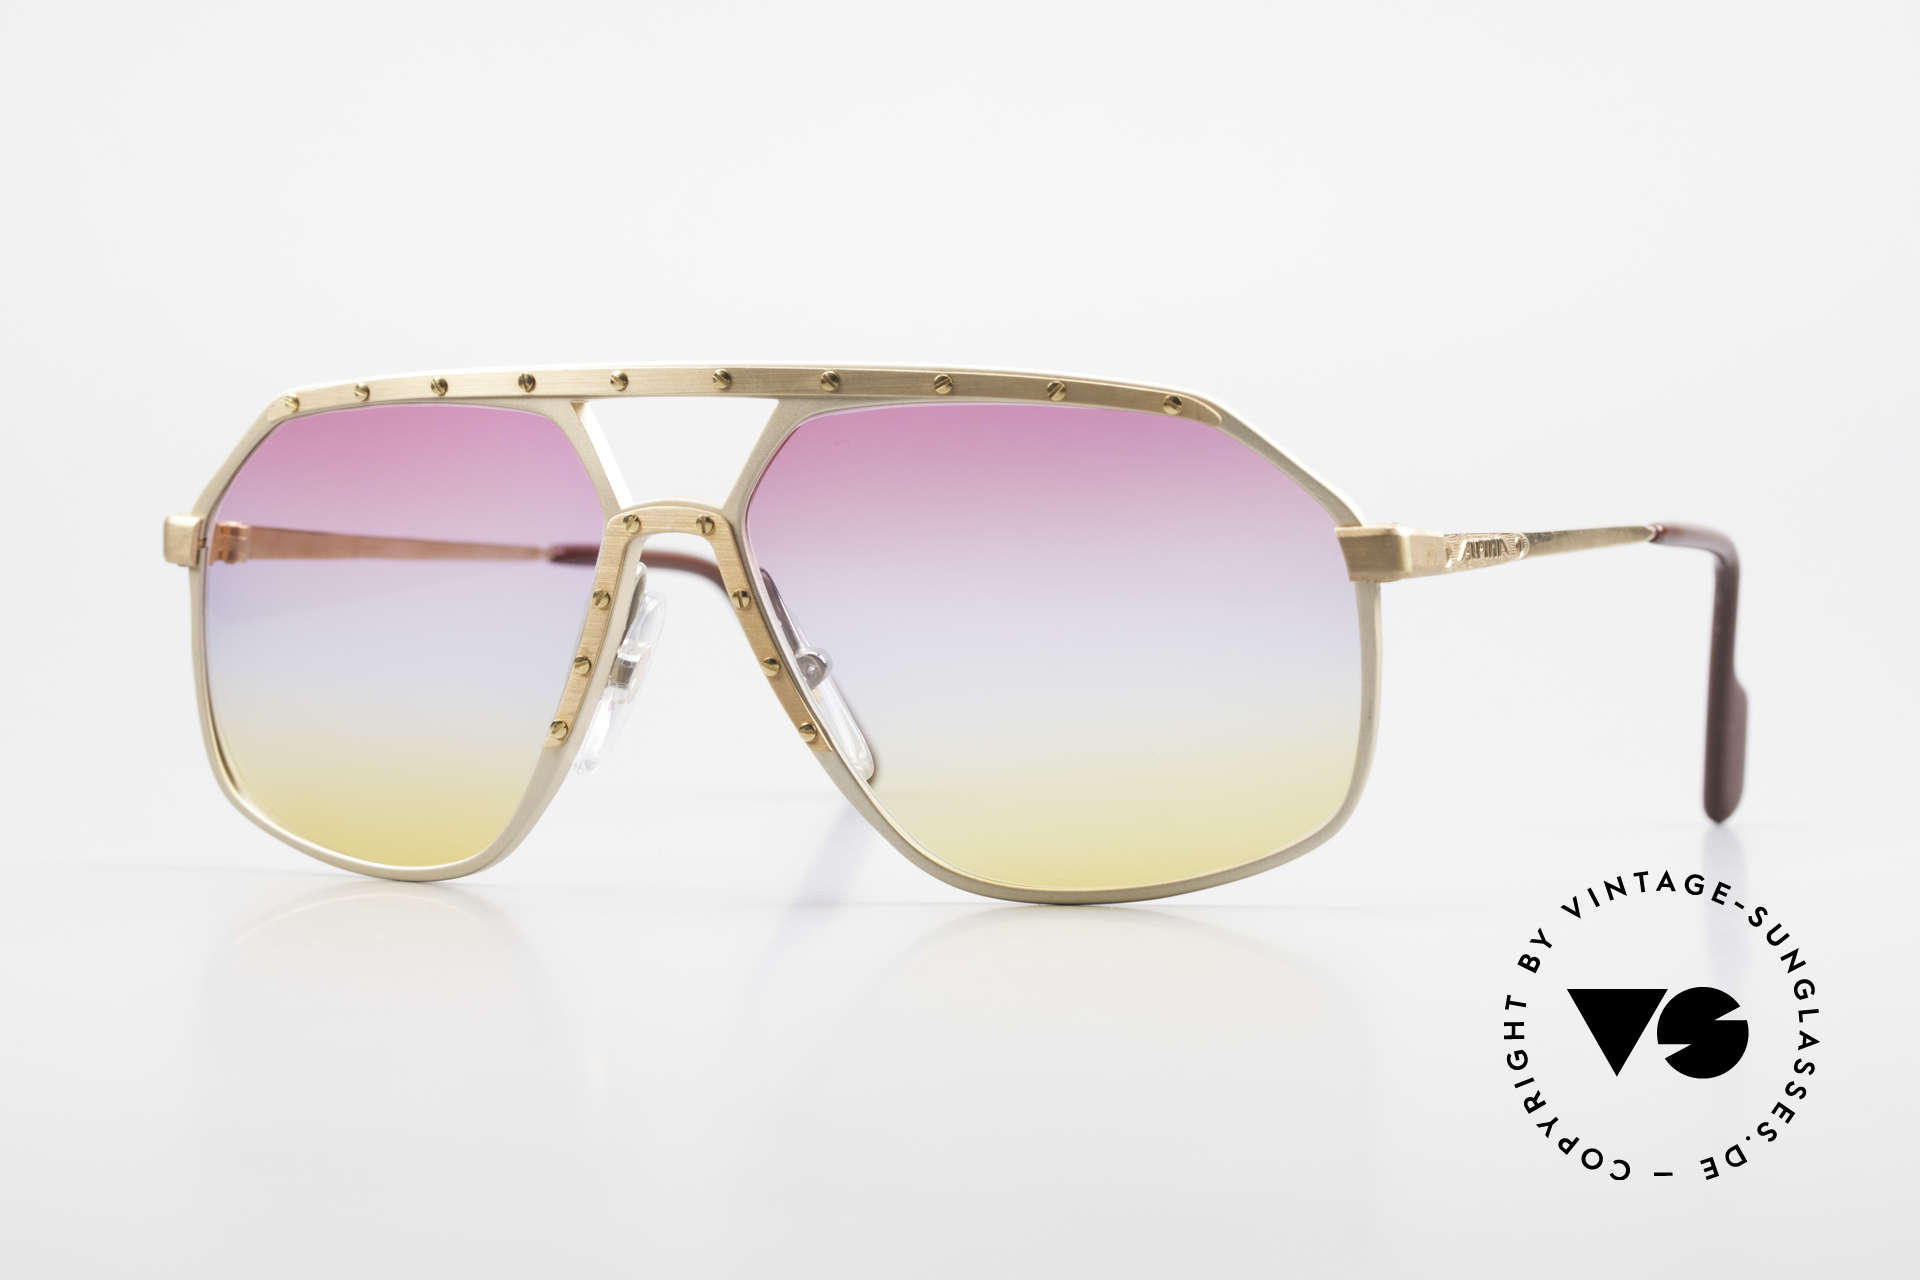 Alpina M6 Iconic 80's Shades Tricolored, Alpina M6 vintage shades with tricolored lenses, Made for Men and Women